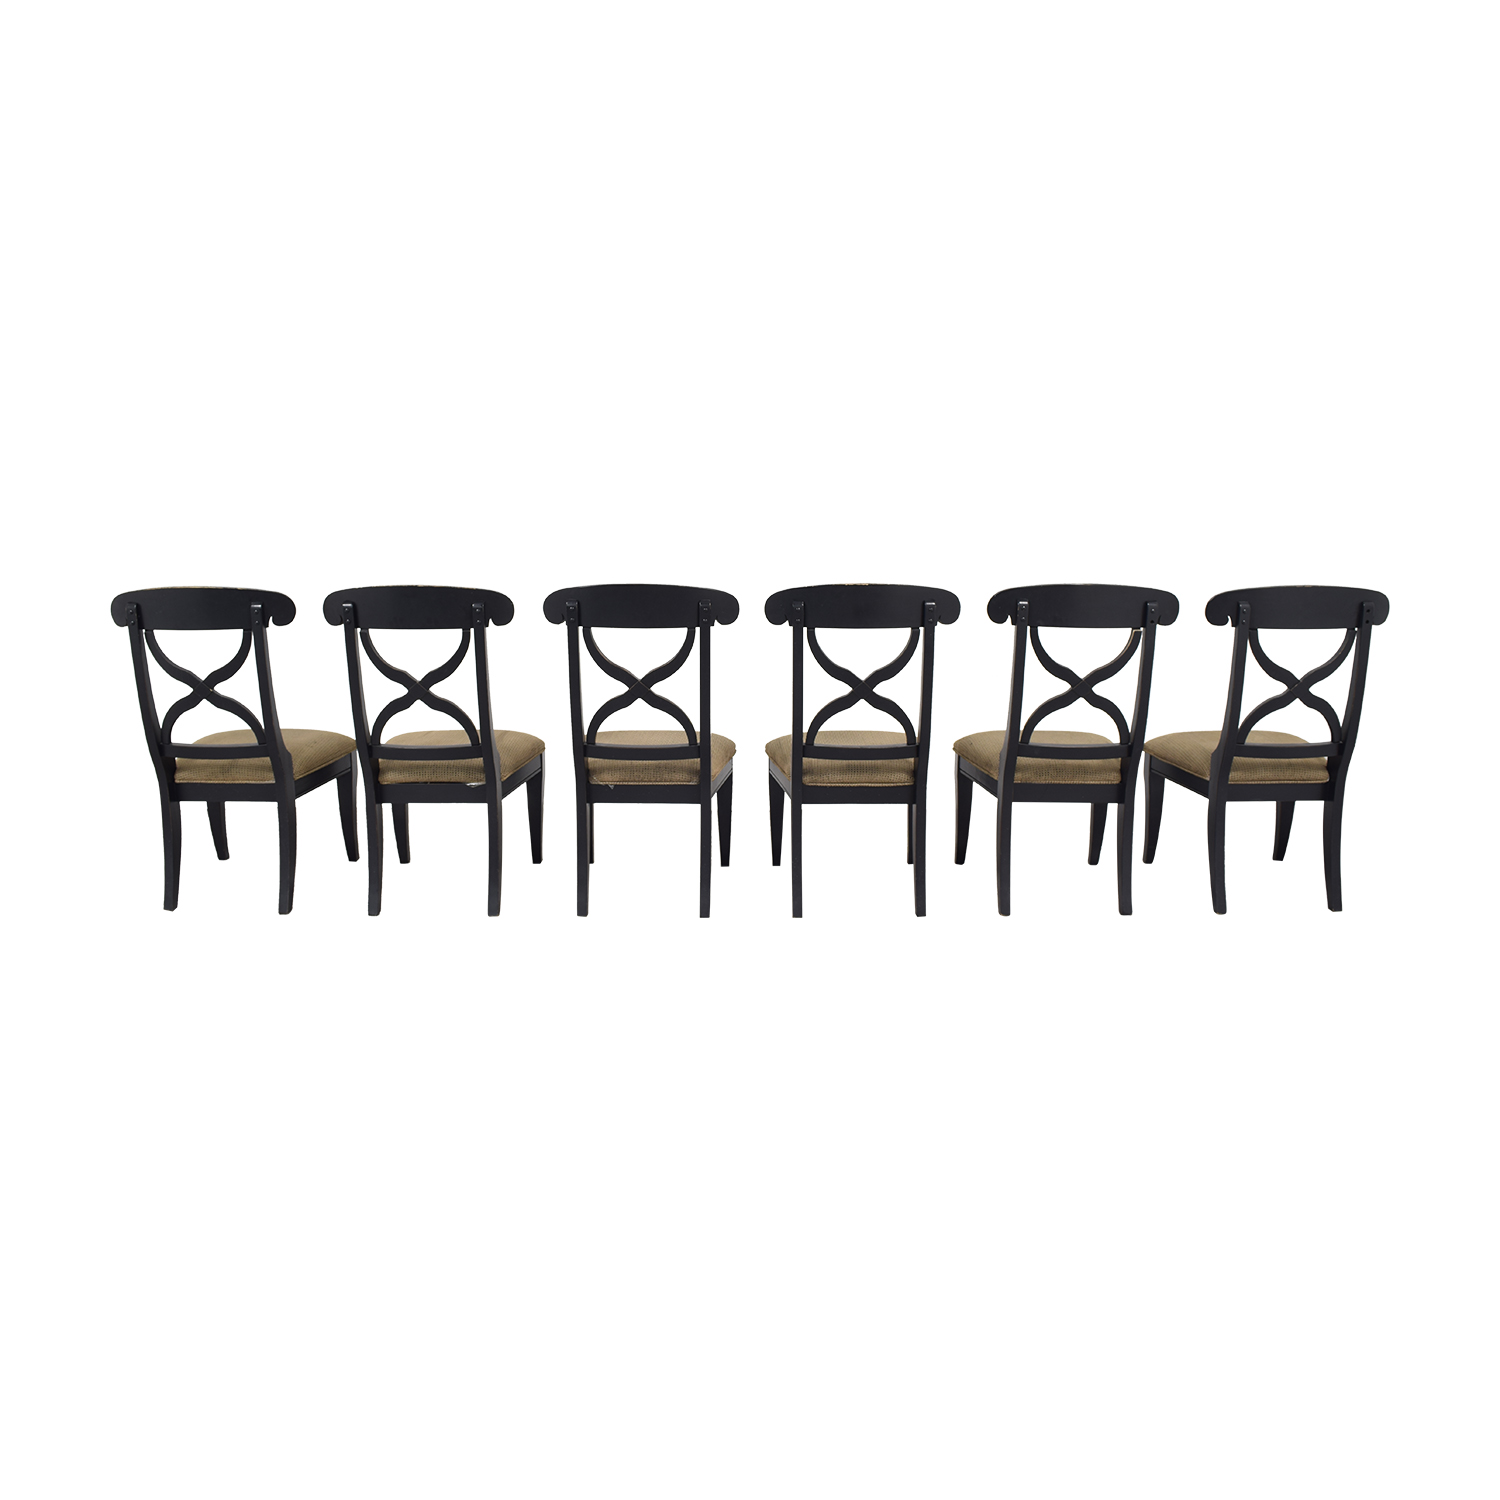 buy Fortunoff Fortunoff Wooden Dining Chairs online